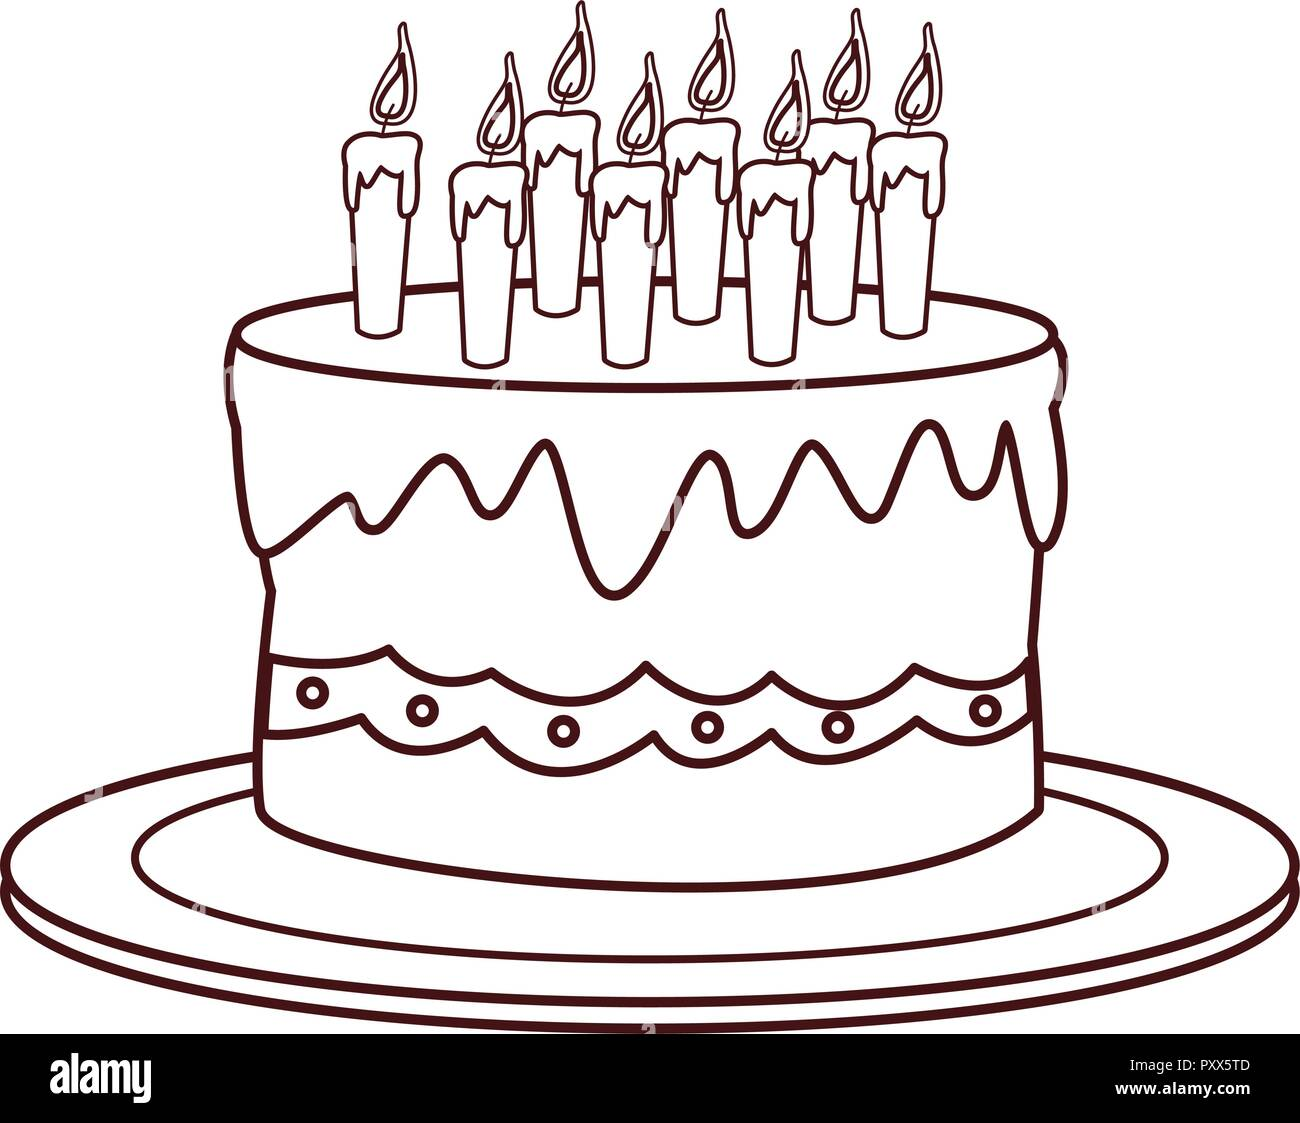 Awesome Birthday Cake Cartoon Stock Vector Art Illustration Vector Funny Birthday Cards Online Elaedamsfinfo